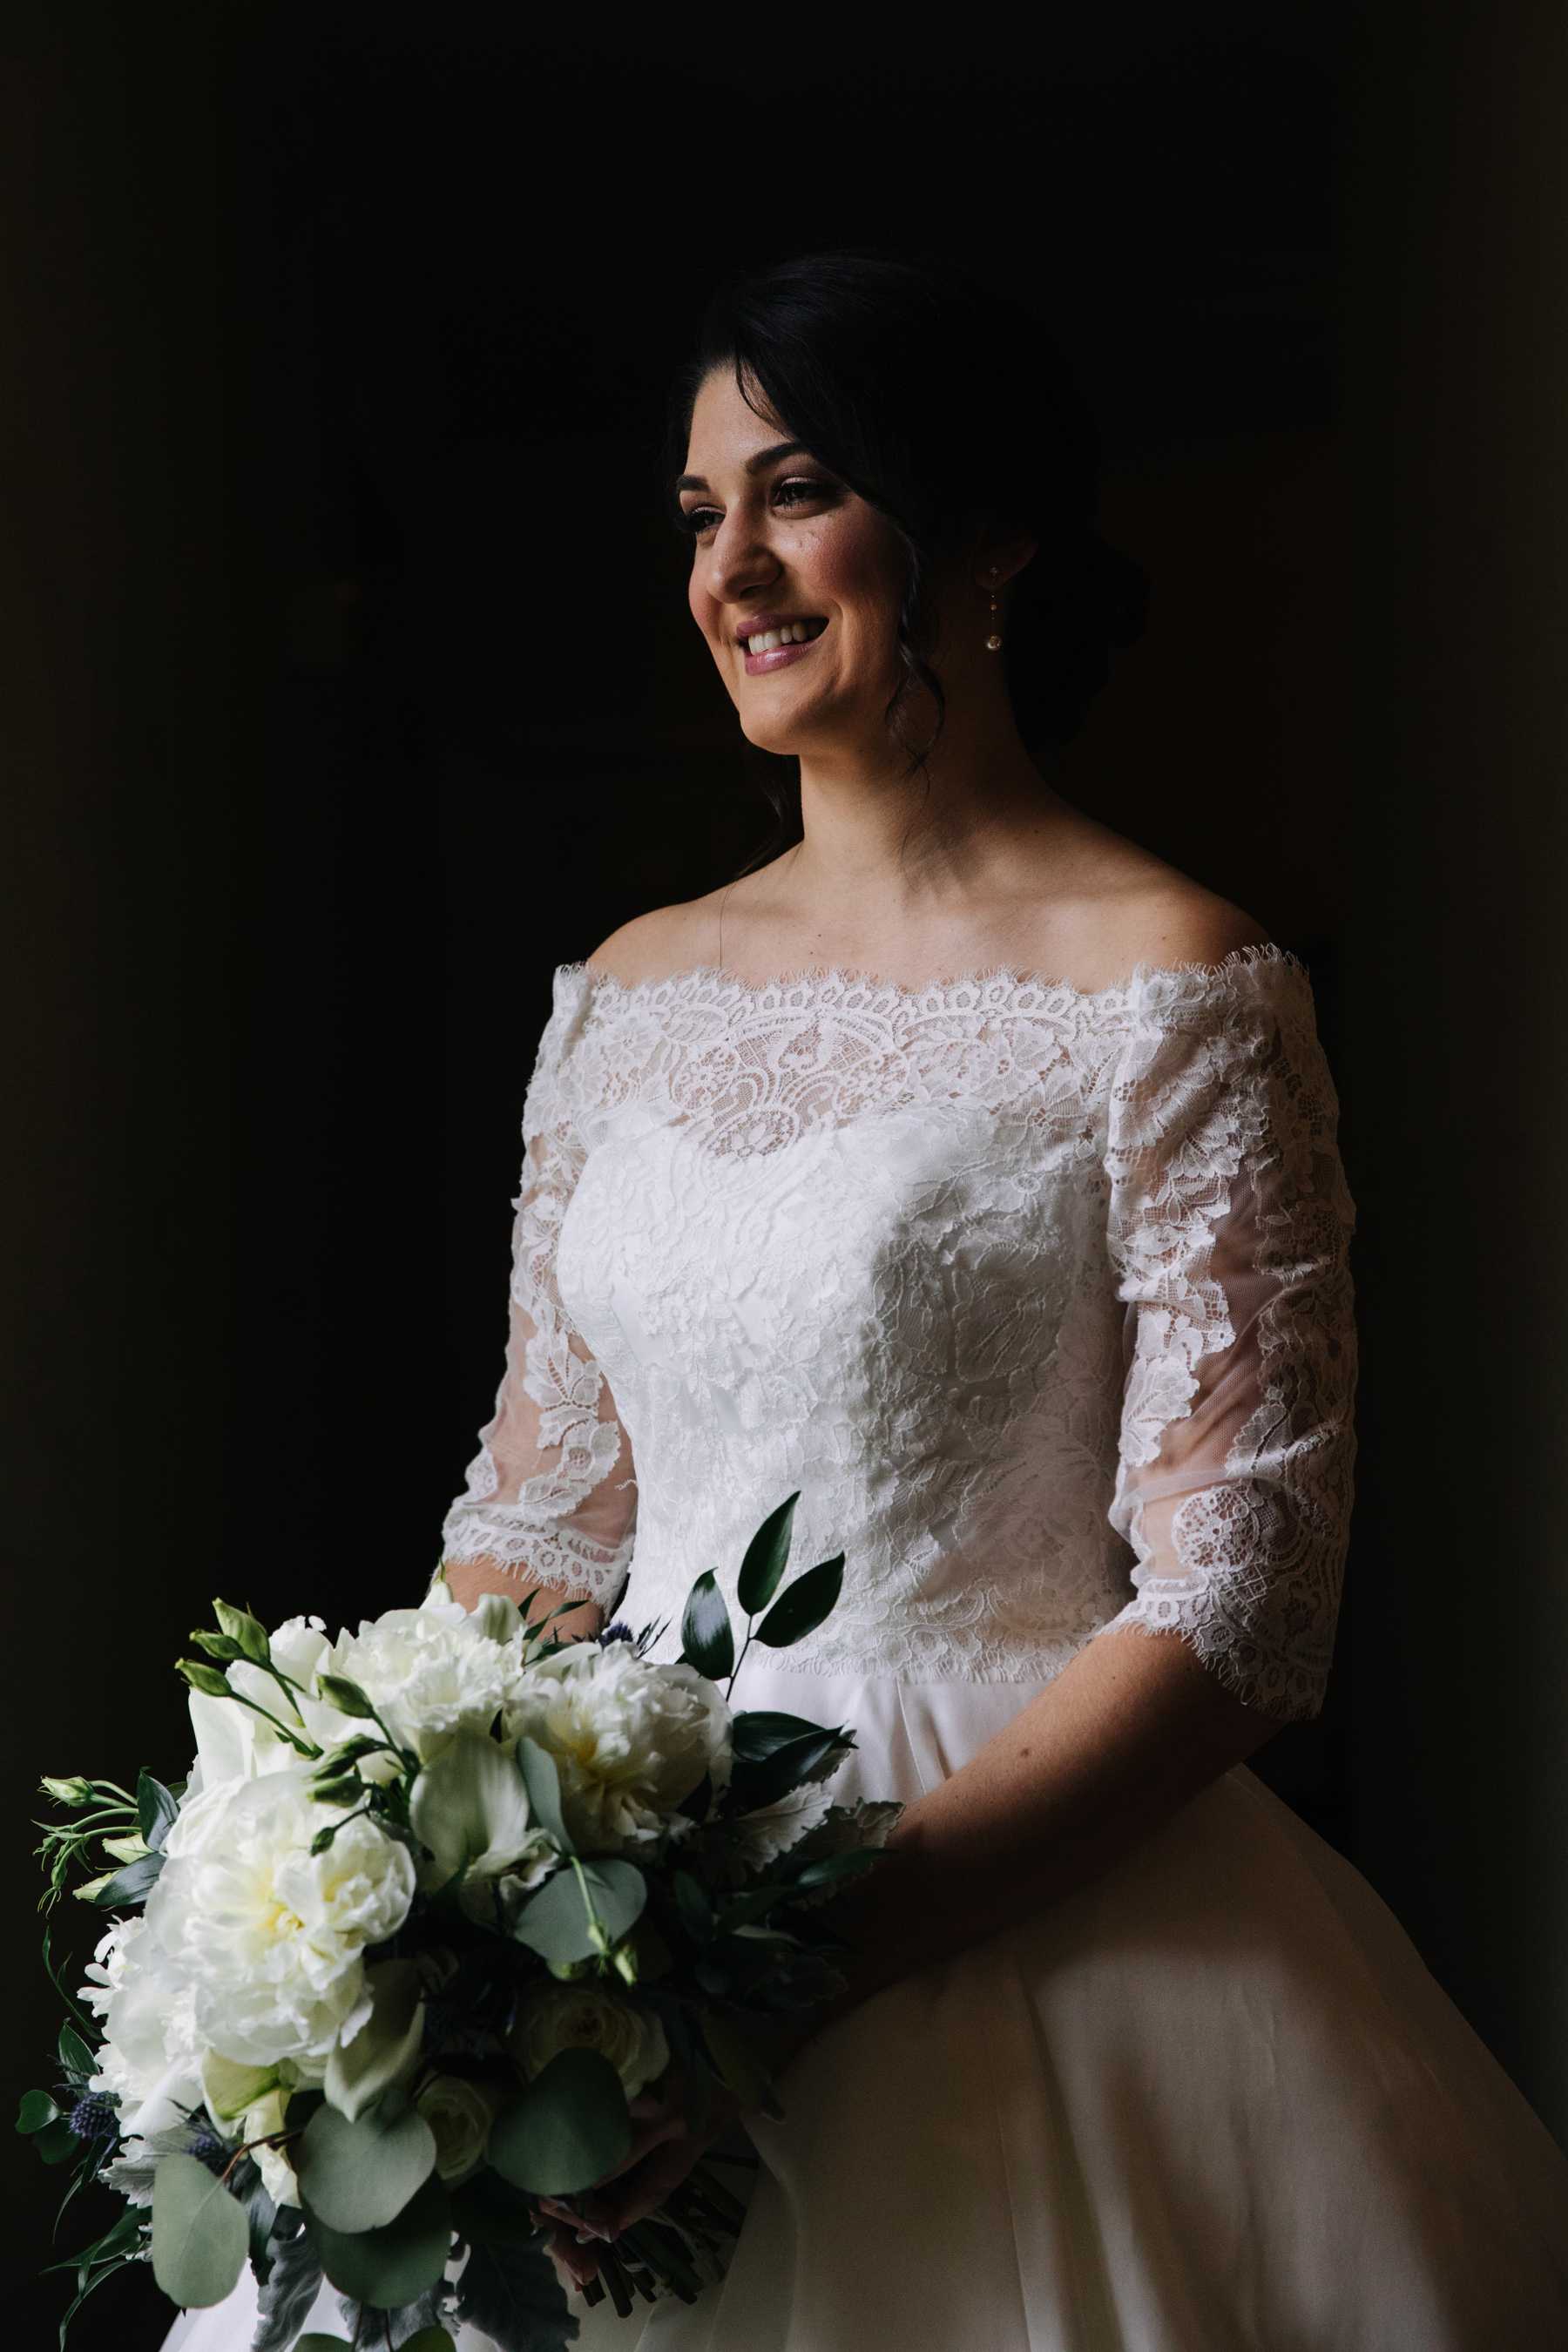 Bride in window light holding a white bouquet before her wedding